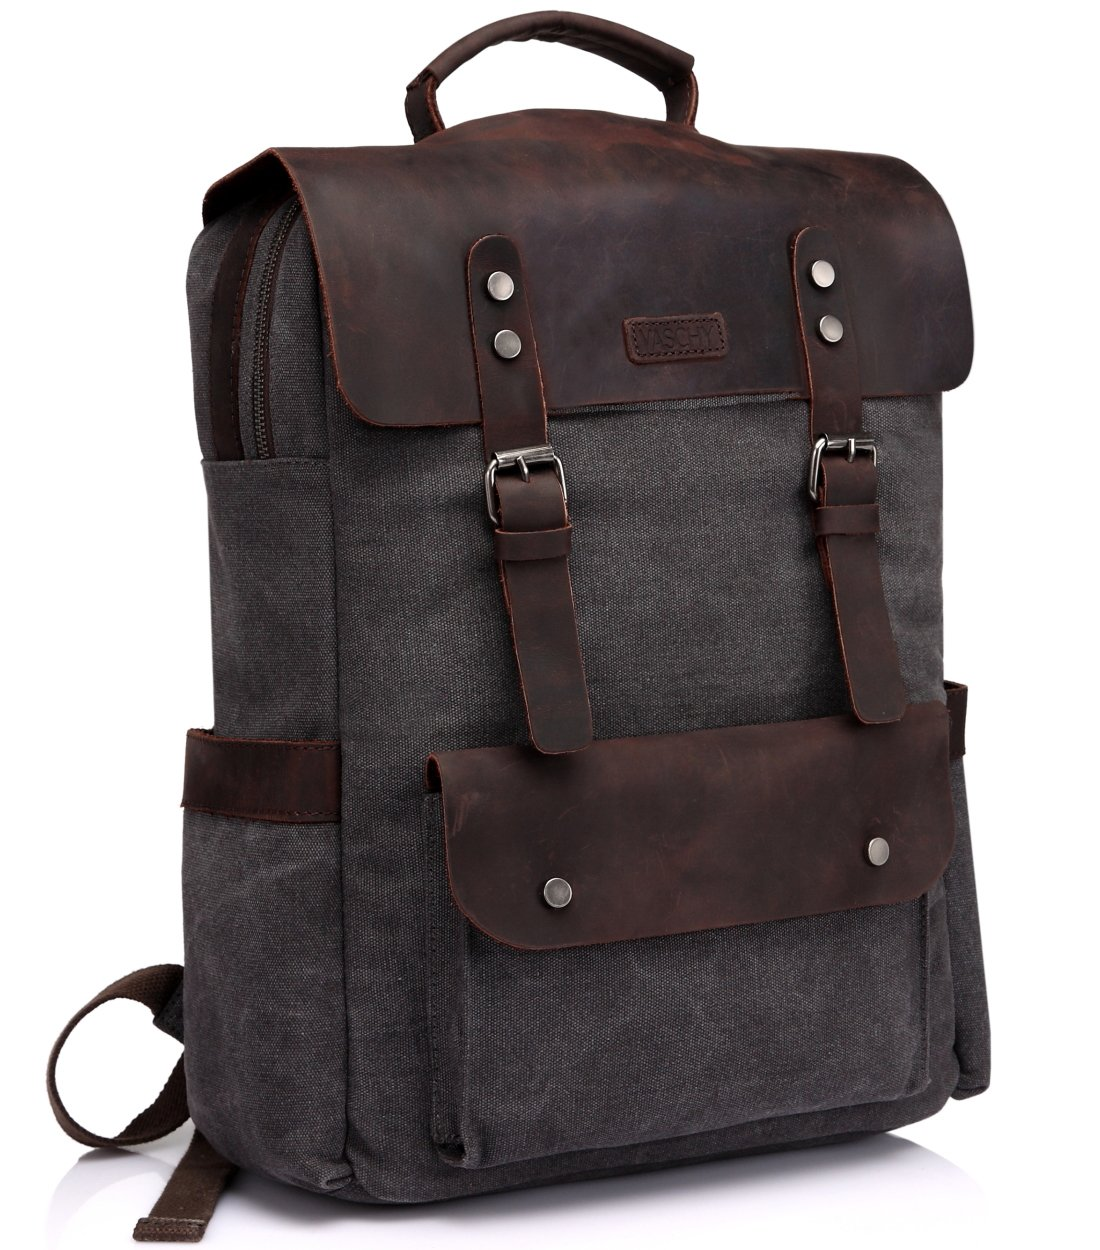 Vaschy Leather Laptop Backpack, Casual Canvas Campus School Rucksack with 15.6 inch Laptop Compartment